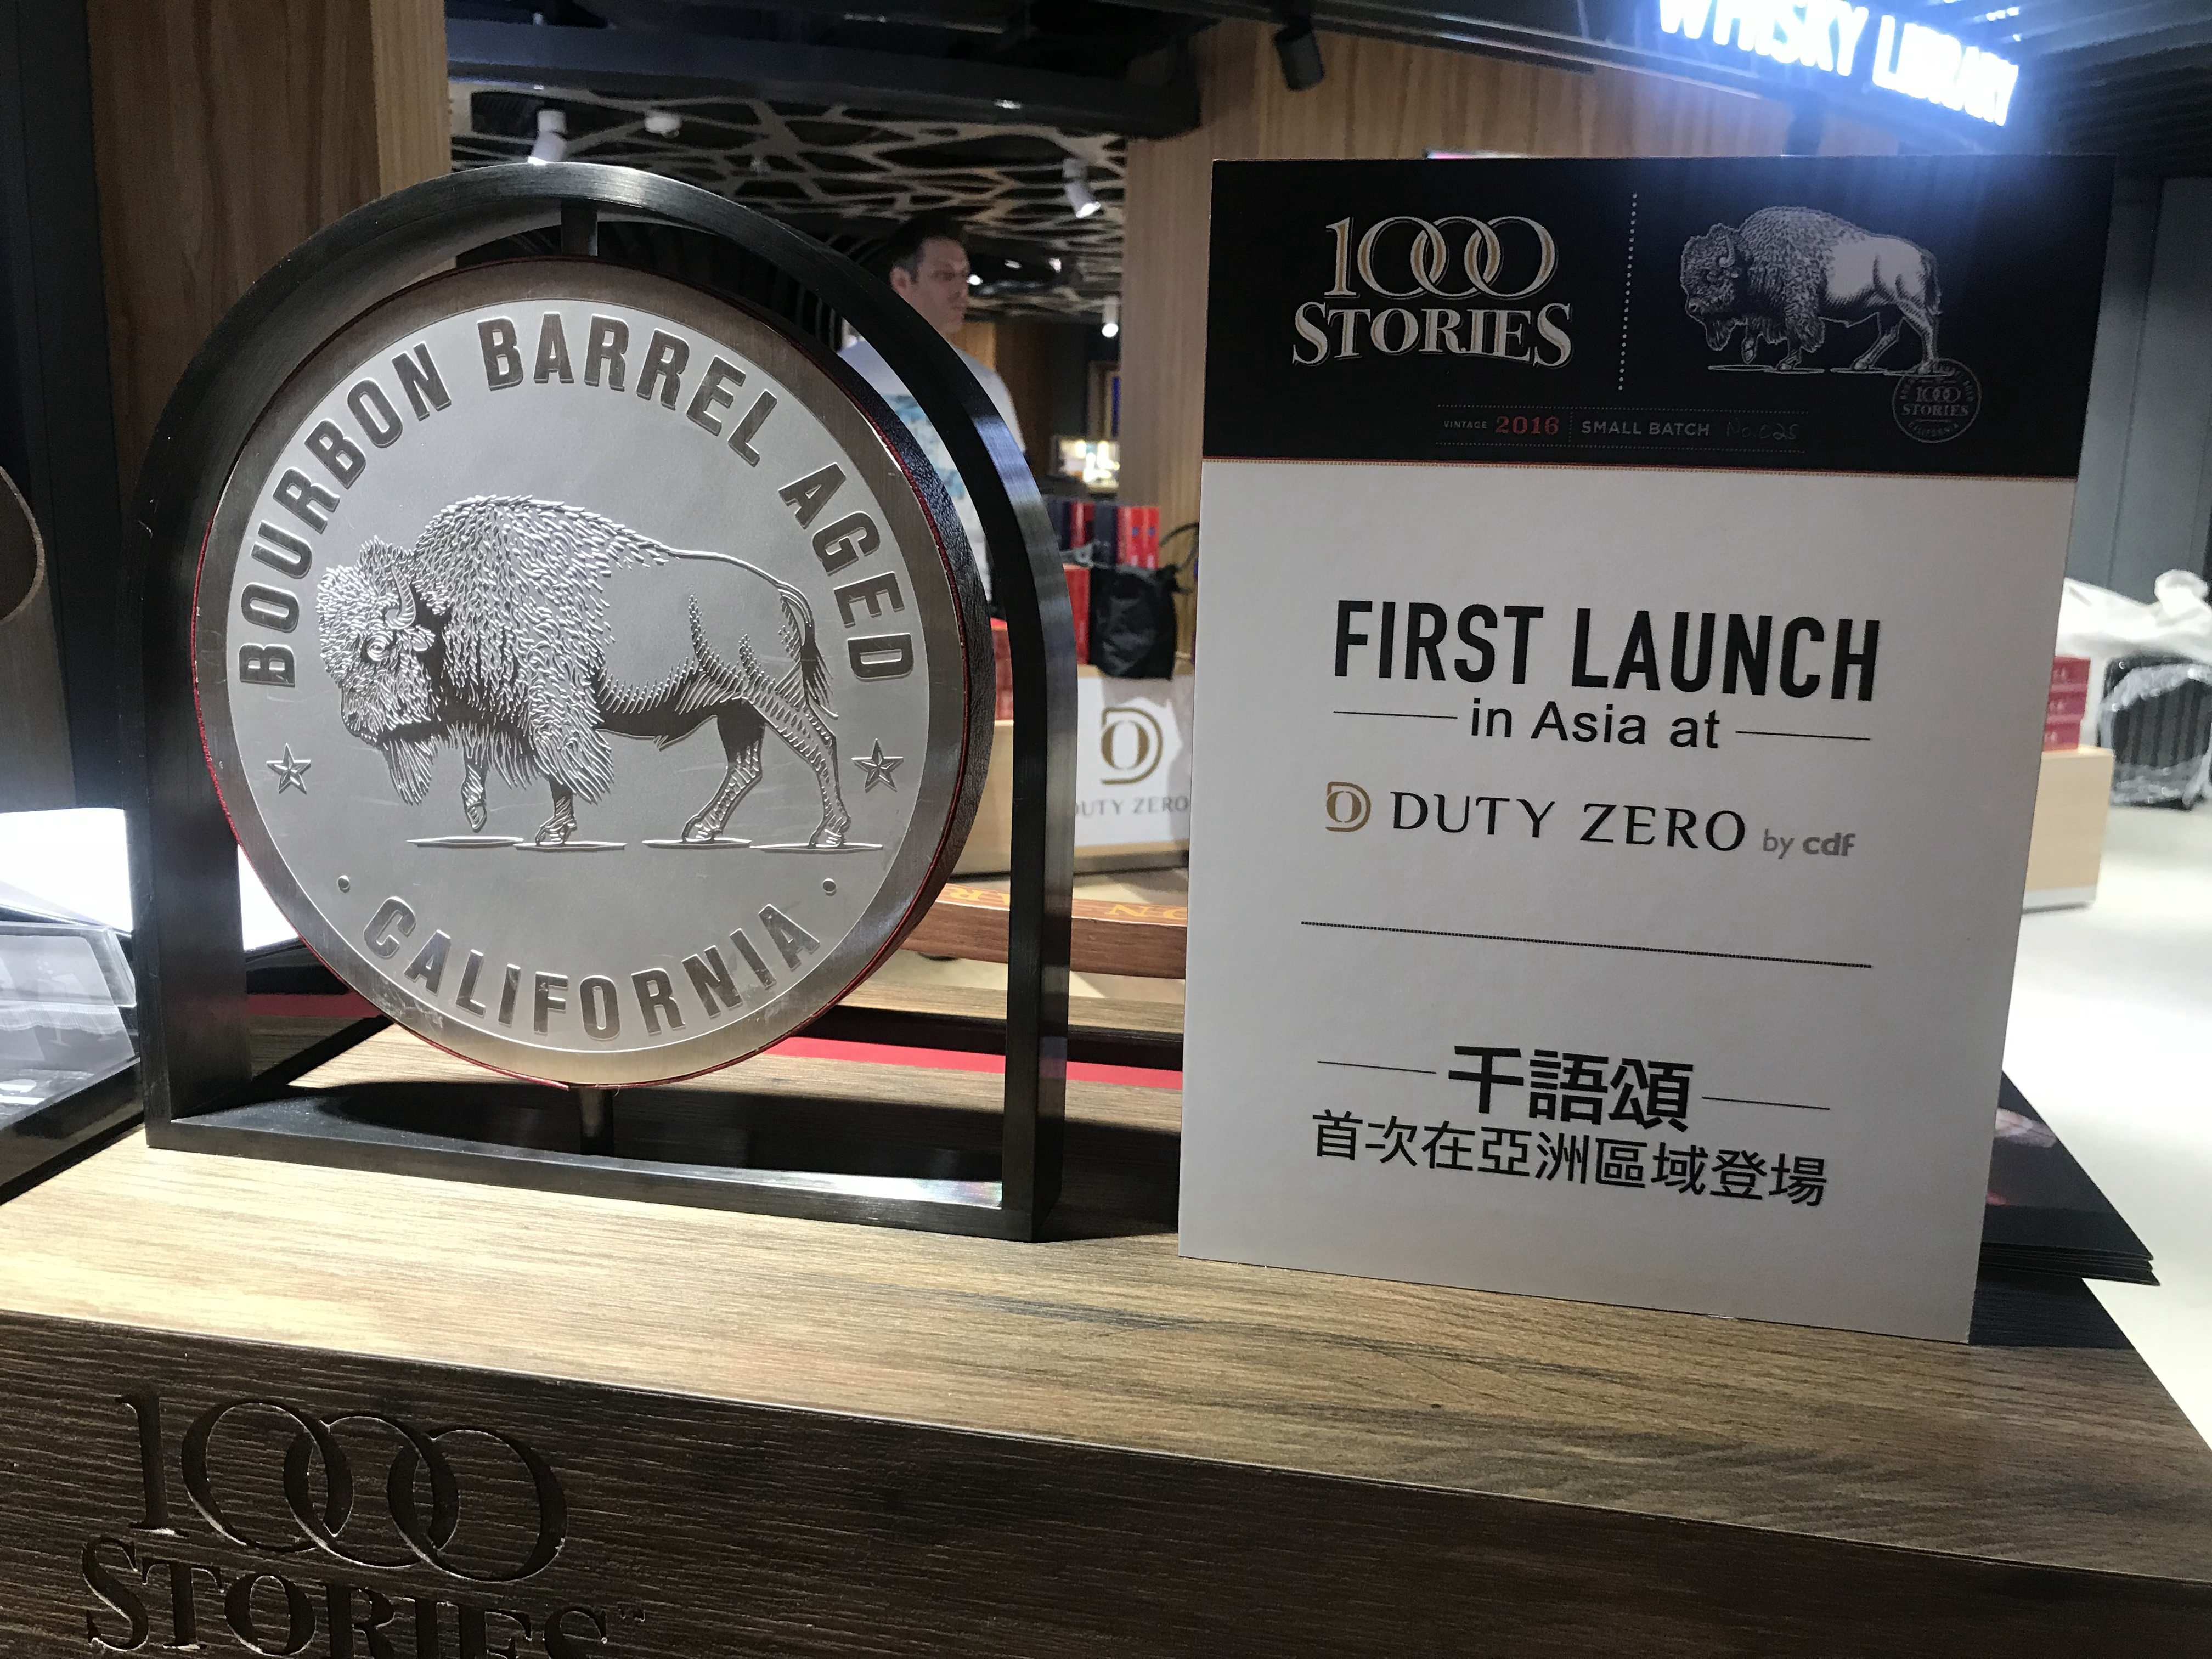 Concha Y Toro And Duty Zero By Cdf Unveil 1000 Stories At Hong Kong International photo